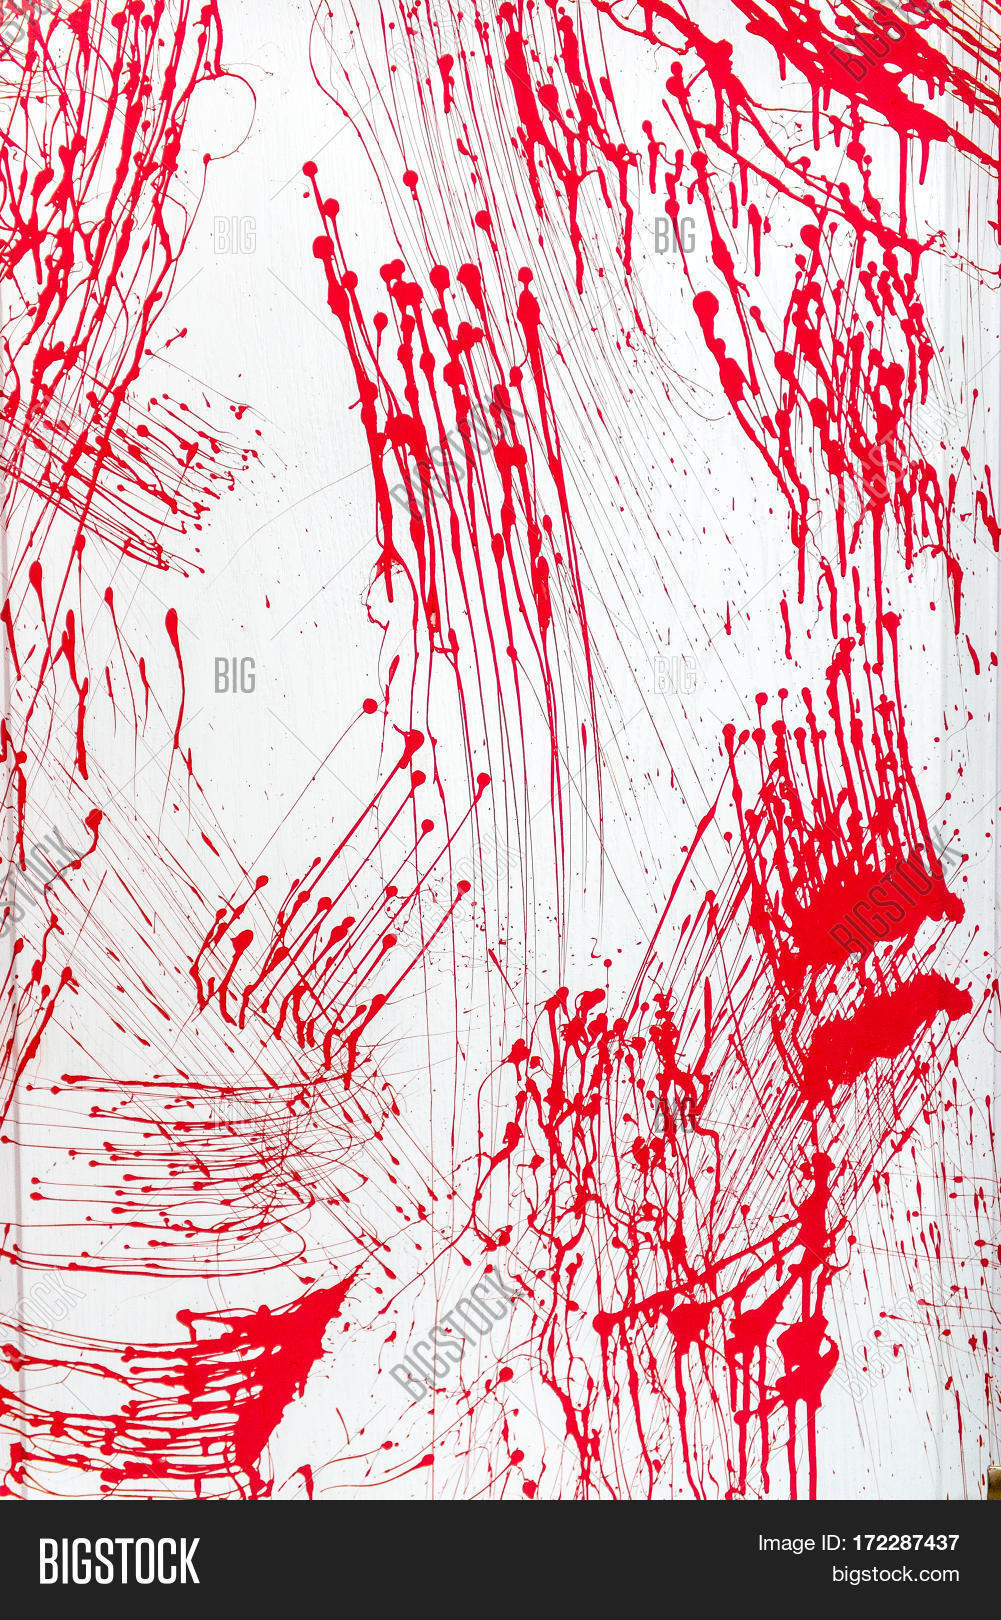 Blood Splatter Red Image Photo Free Trial Bigstock Blood splash free brushes licensed under creative commons, open source, and more! blood splatter red image photo free